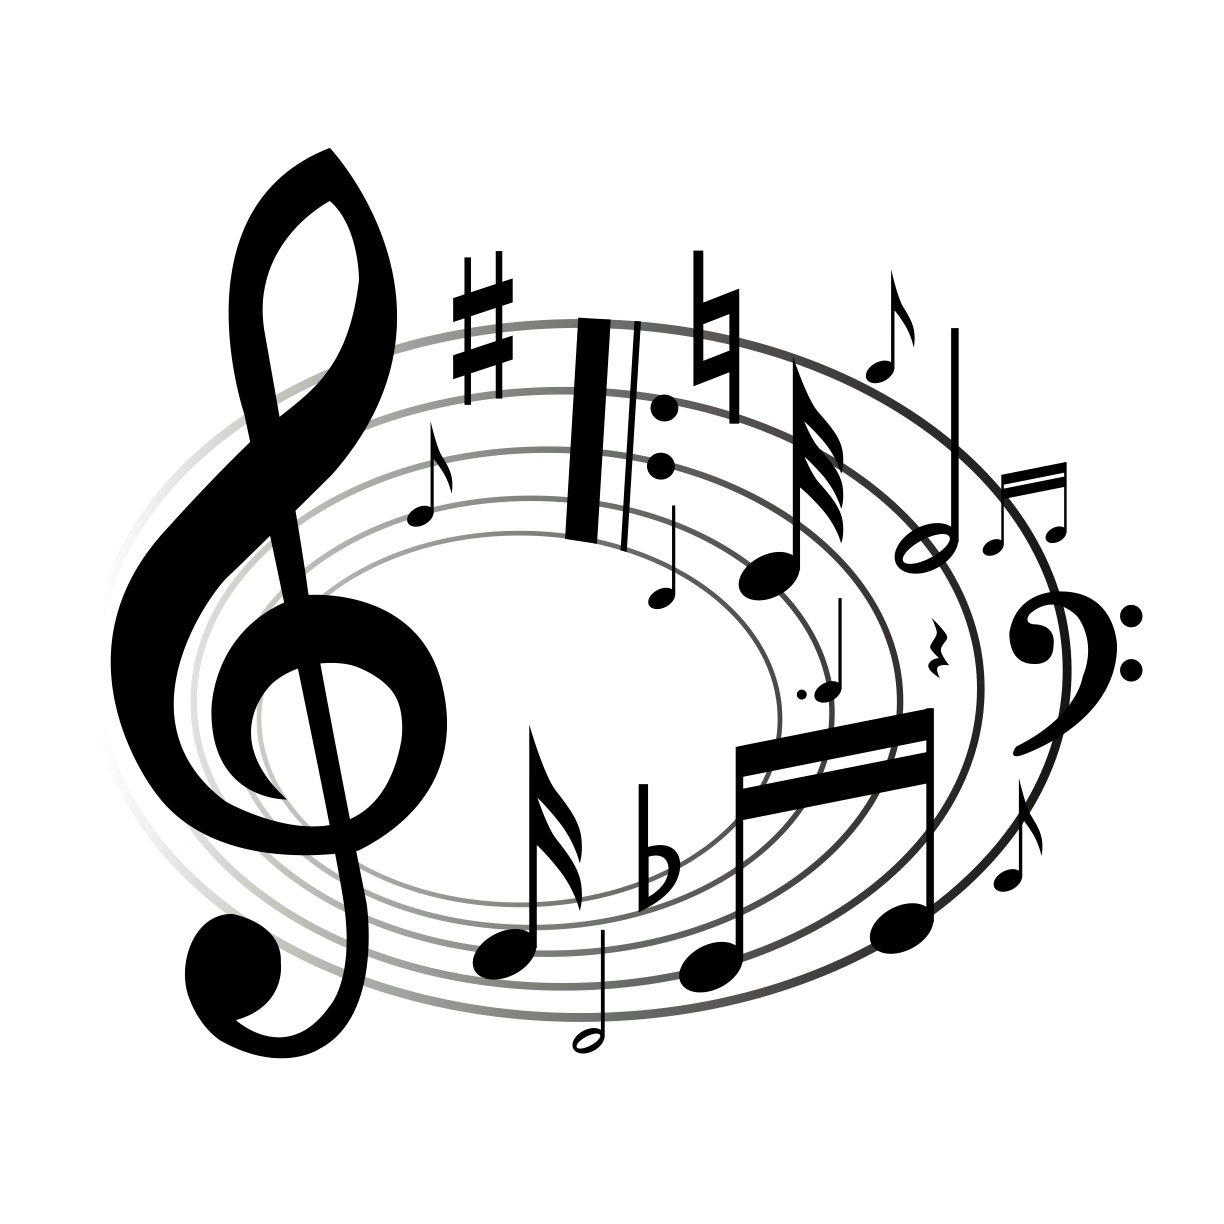 free clipart music note symbol - photo #5